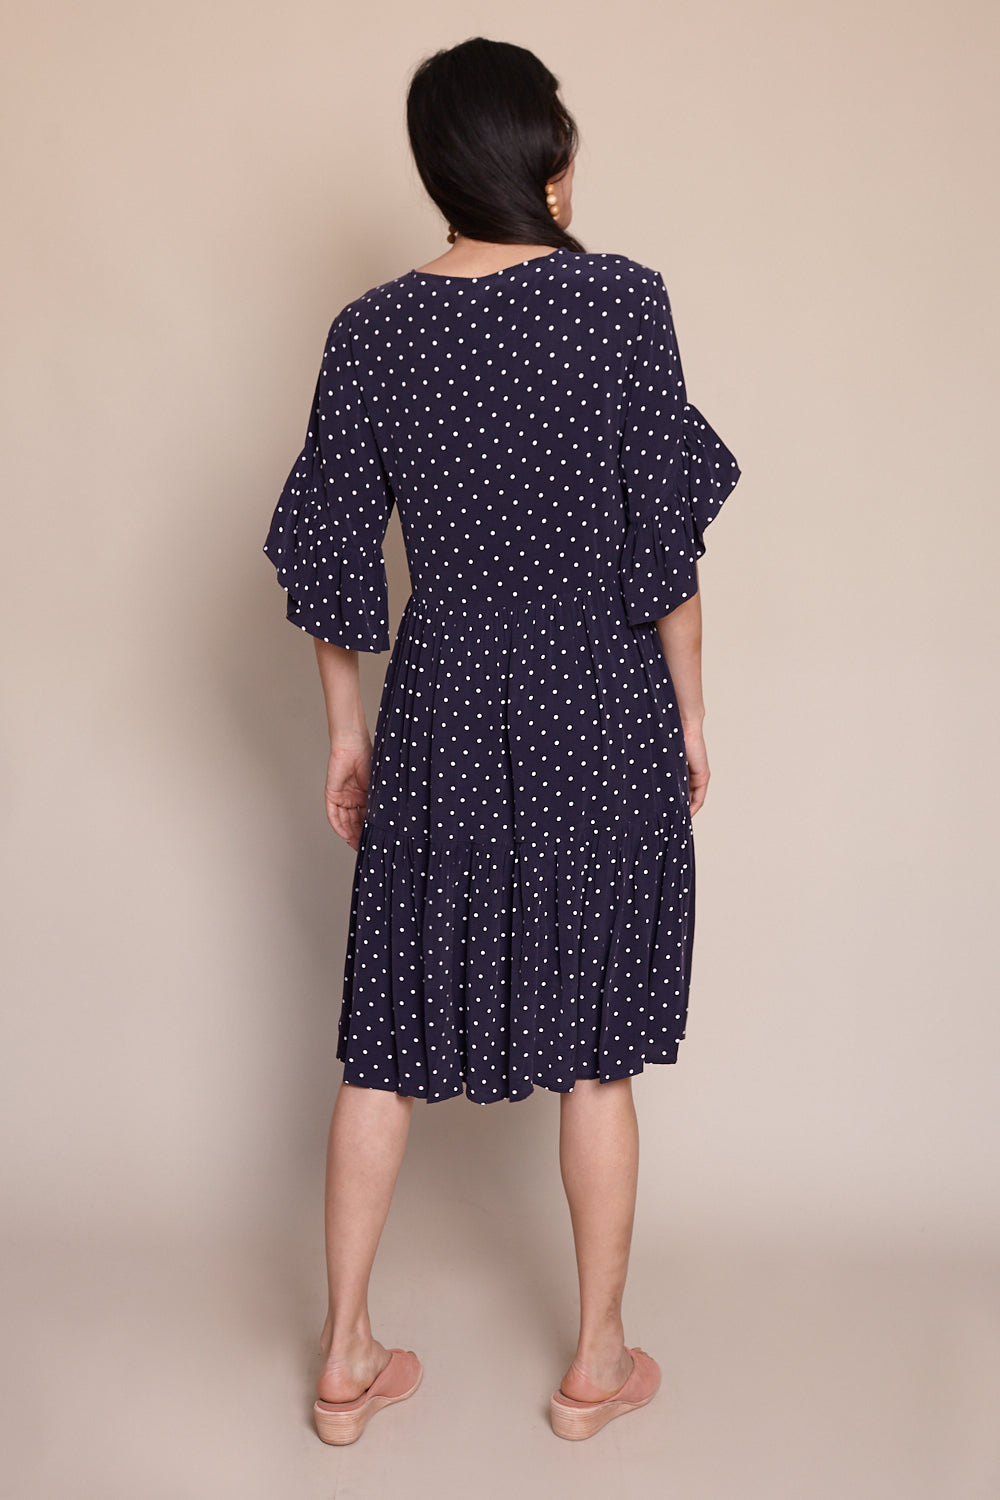 Gayle Dress in Navy Dot